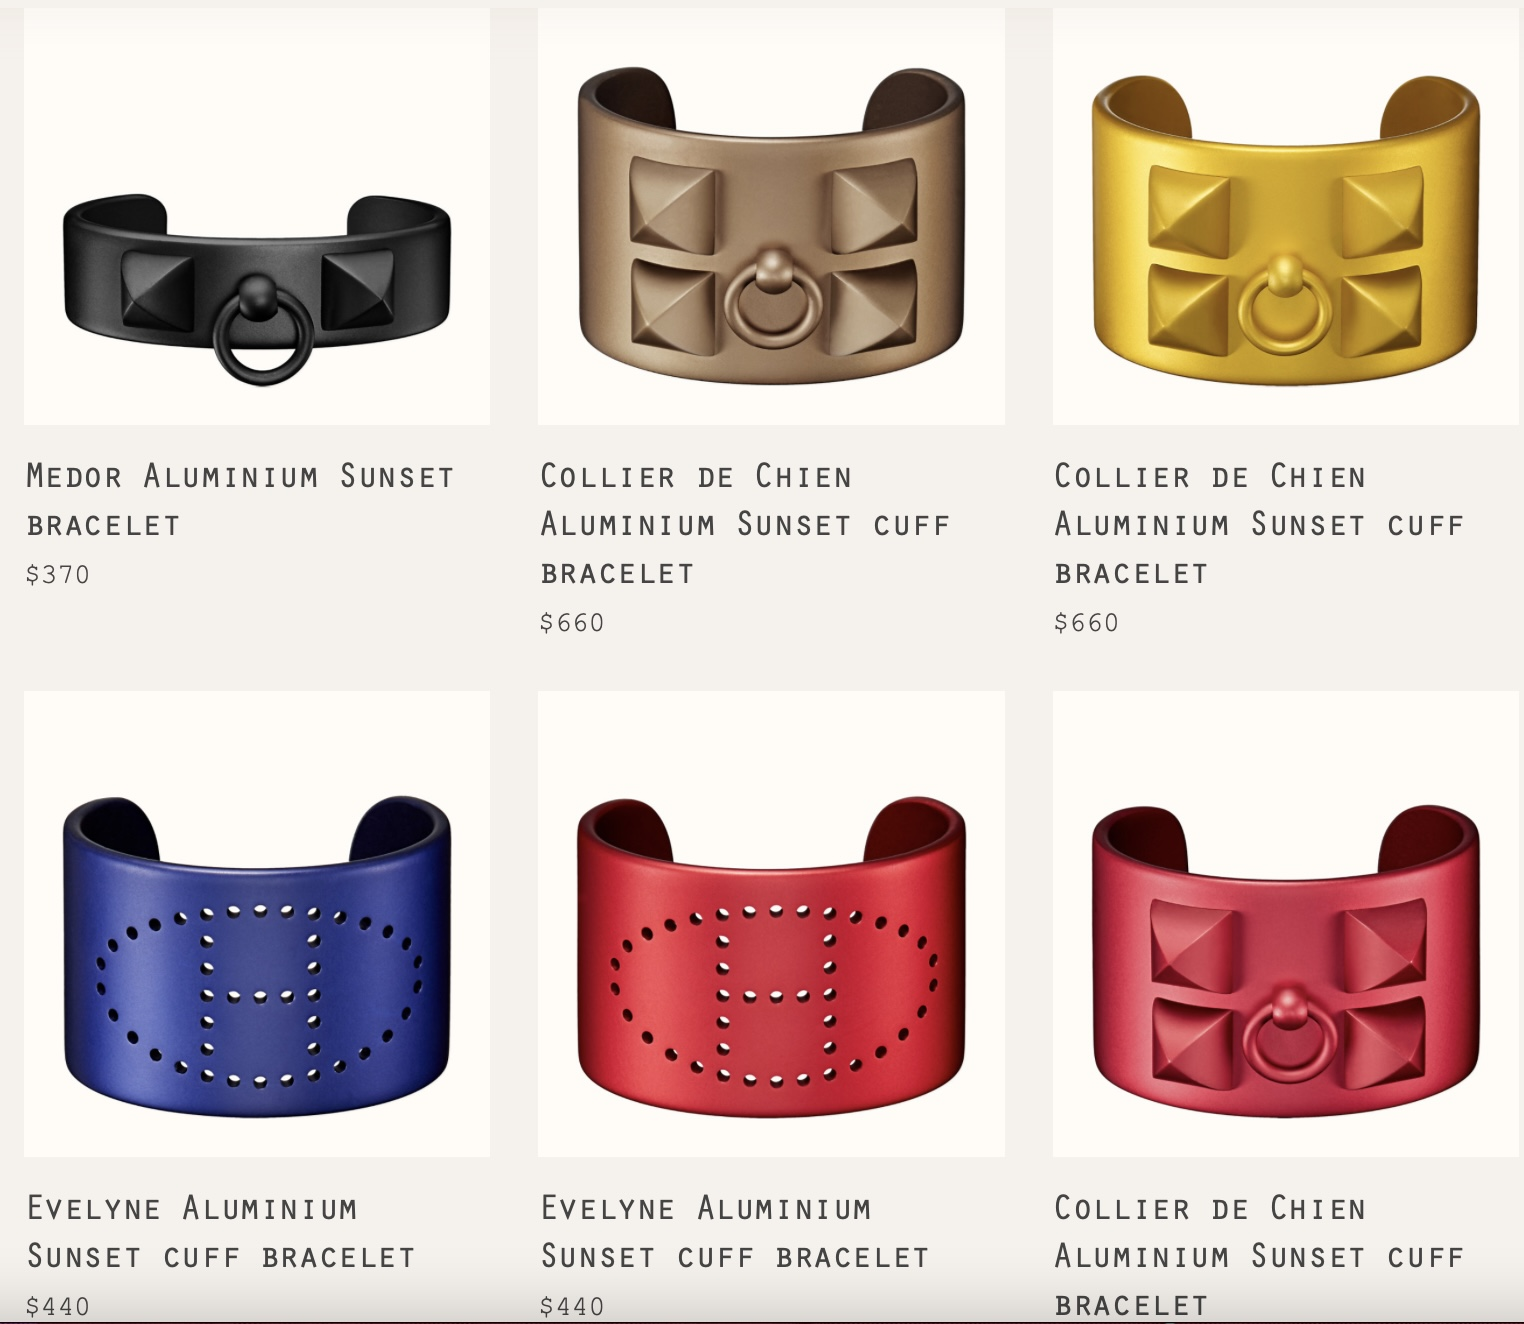 Various Aluminum Sunset Cuffs currently available at Hermes.com. Gotta warn you, the sizing can be tricky on these.